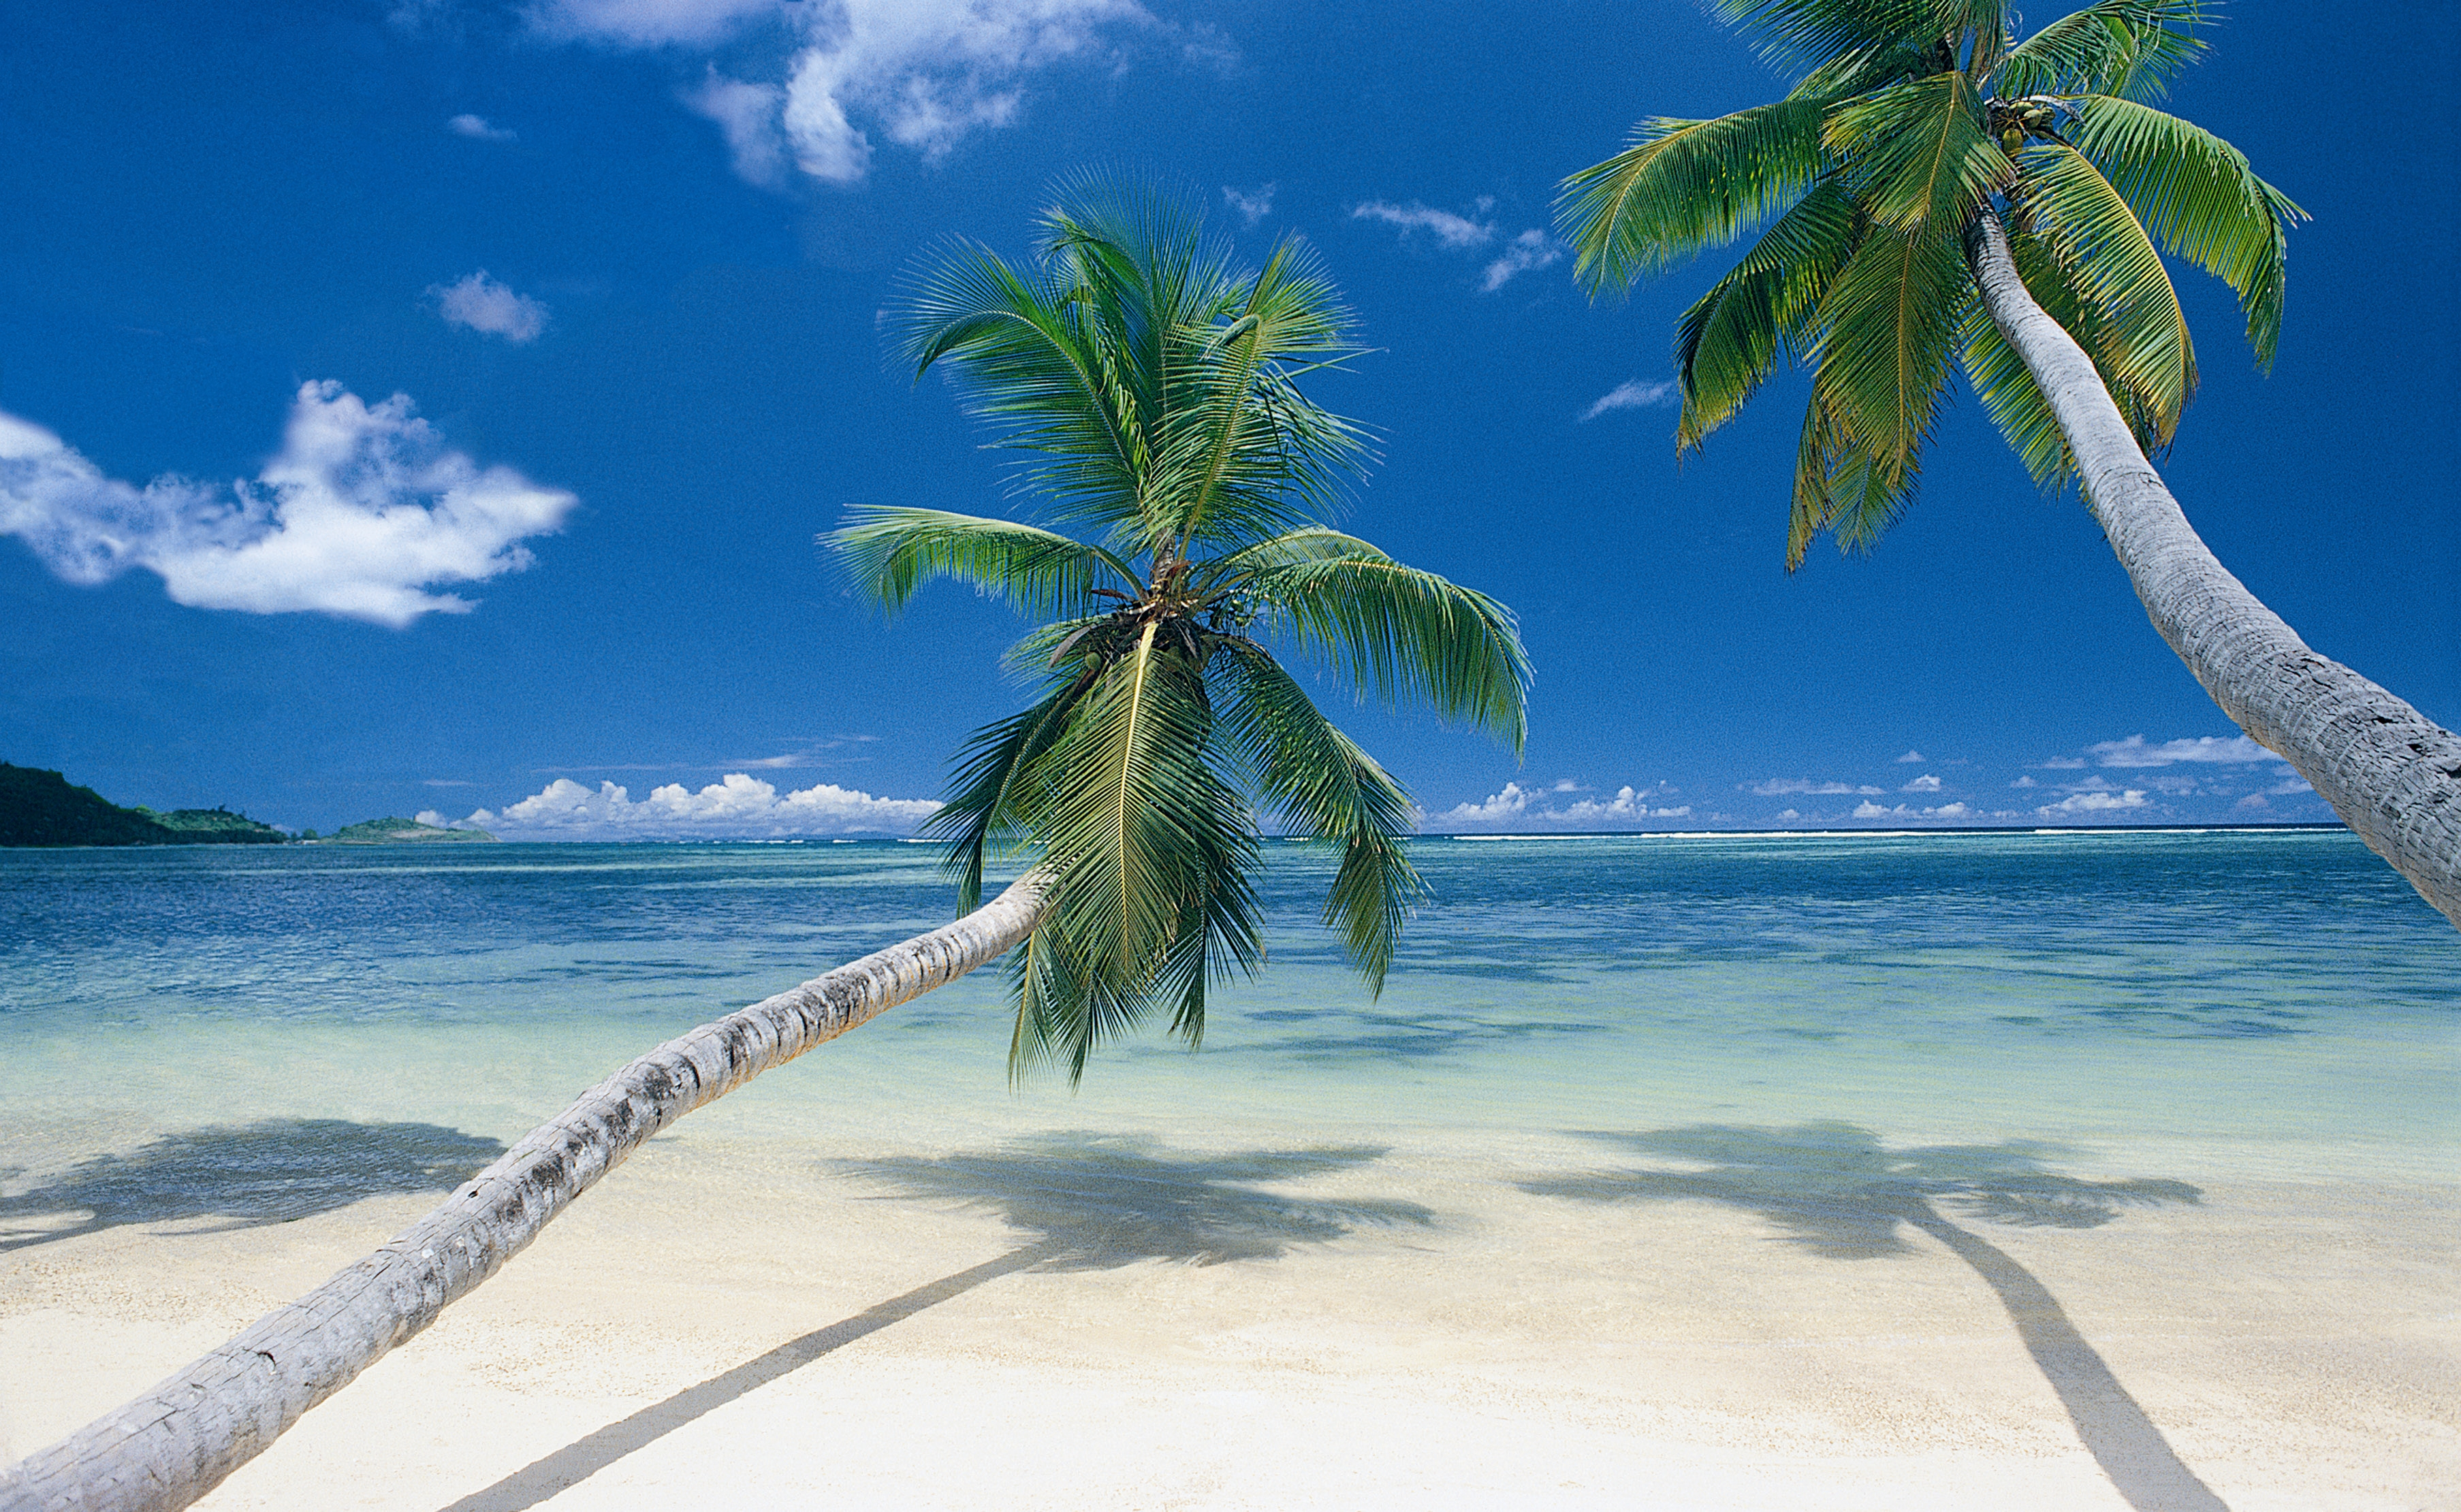 Palm trees on beach wallpapers and images   wallpapers pictures 3614x2221